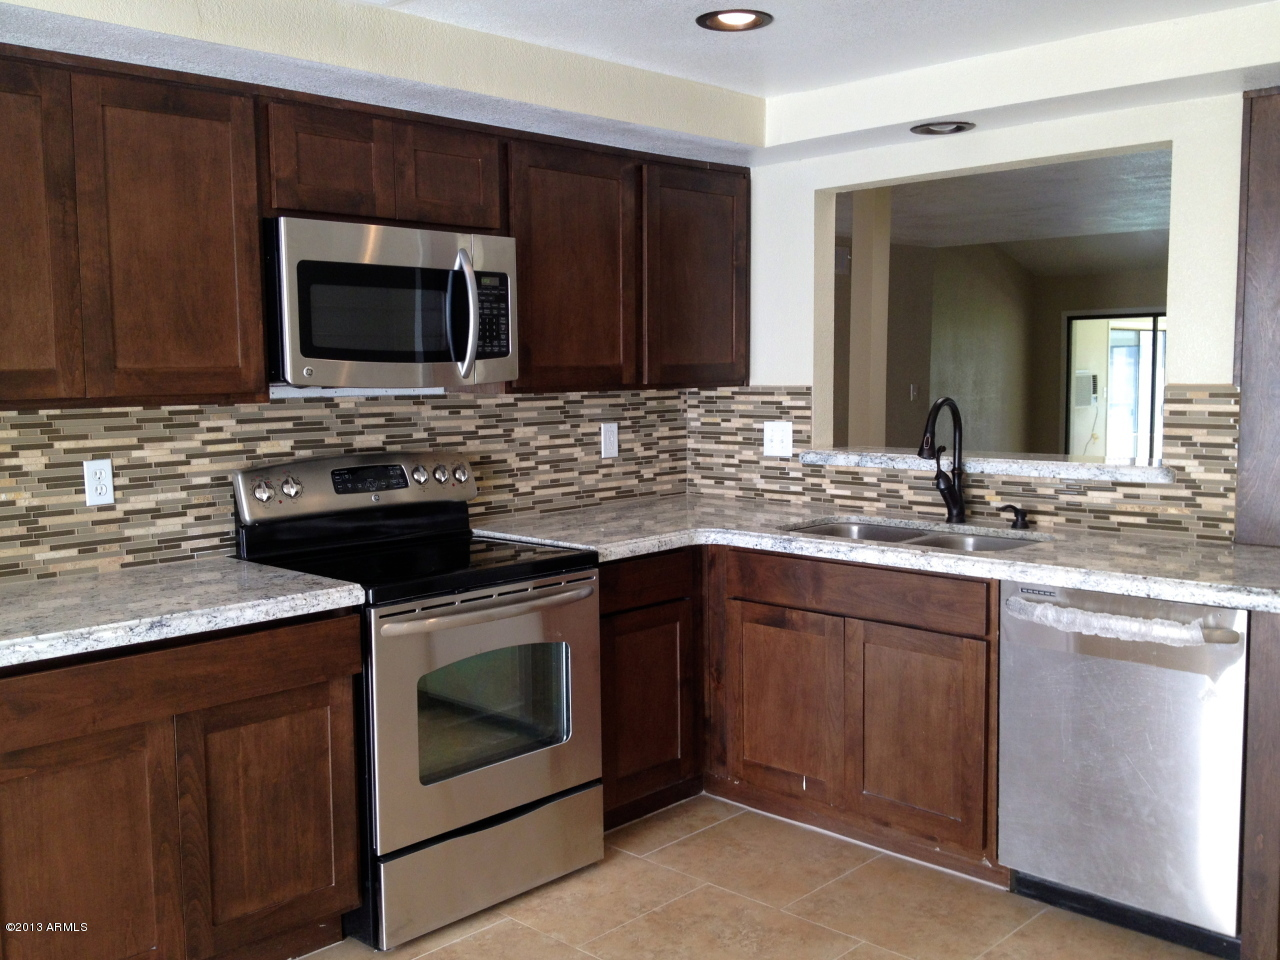 Kitchen & Bathroom Remodeling Portfolio - Phoenix, AZ